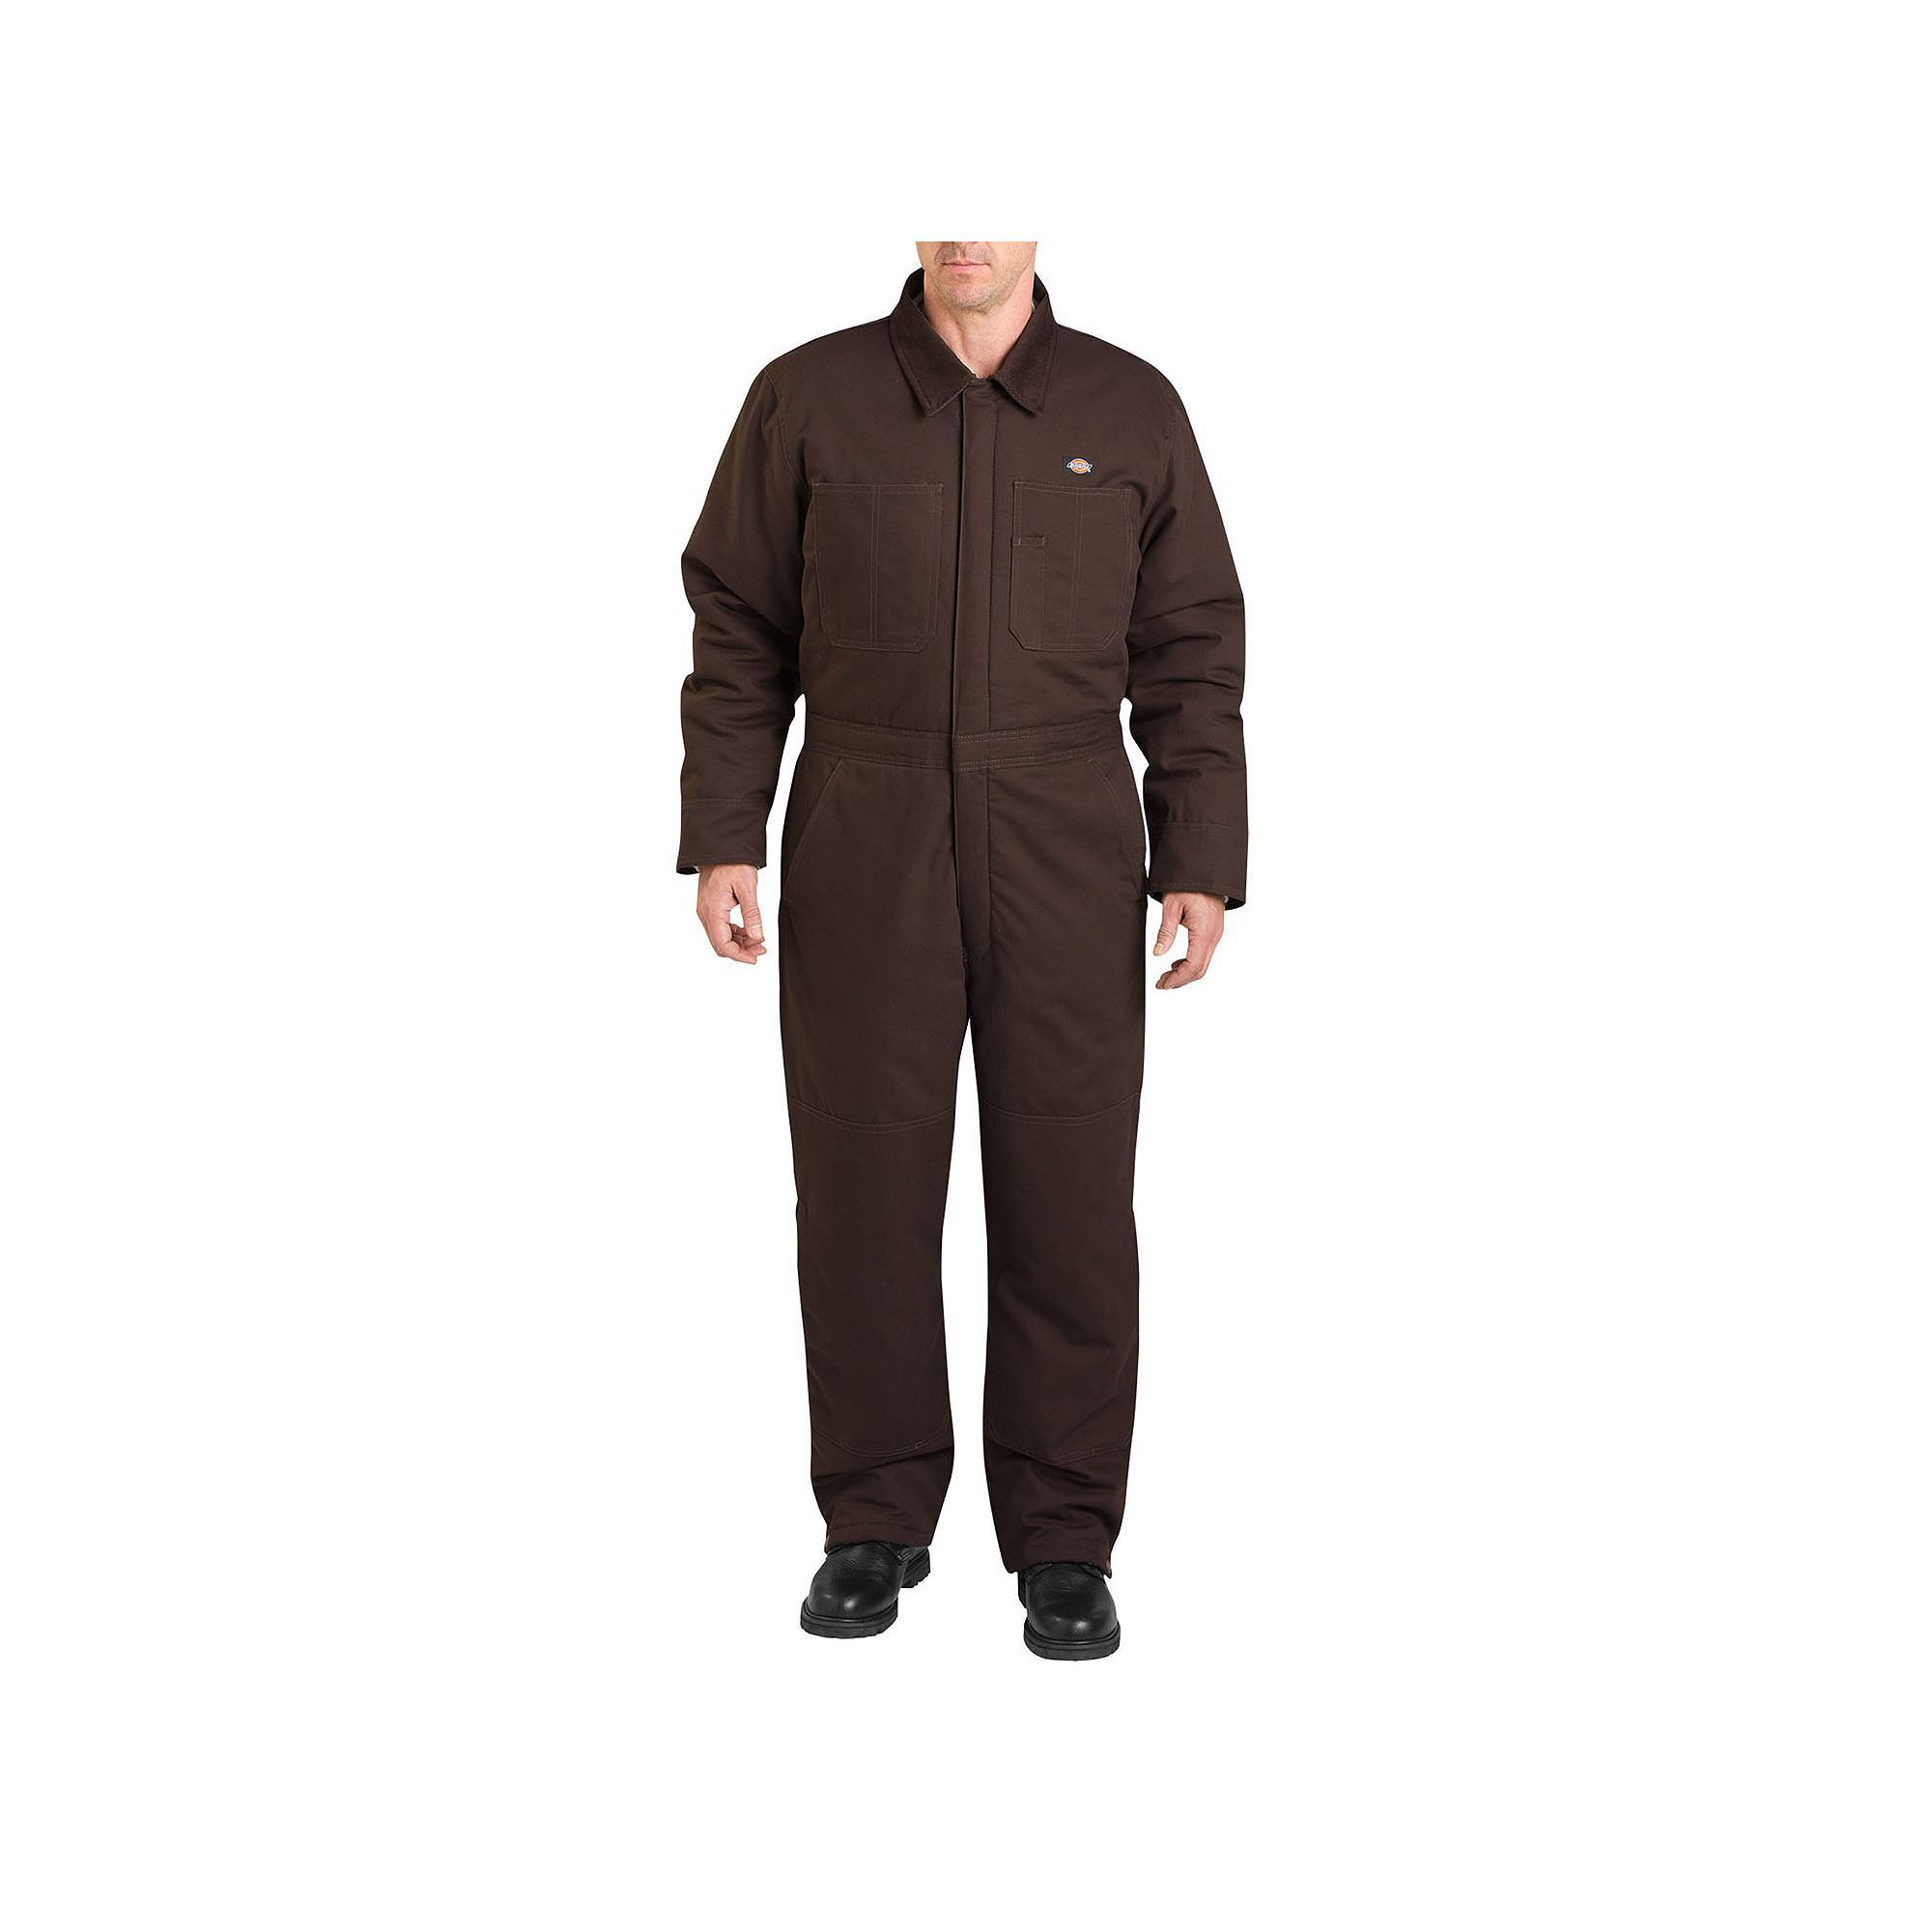 men s dickies sanded duck insulated coverall size medium on insulated overalls for men id=53728